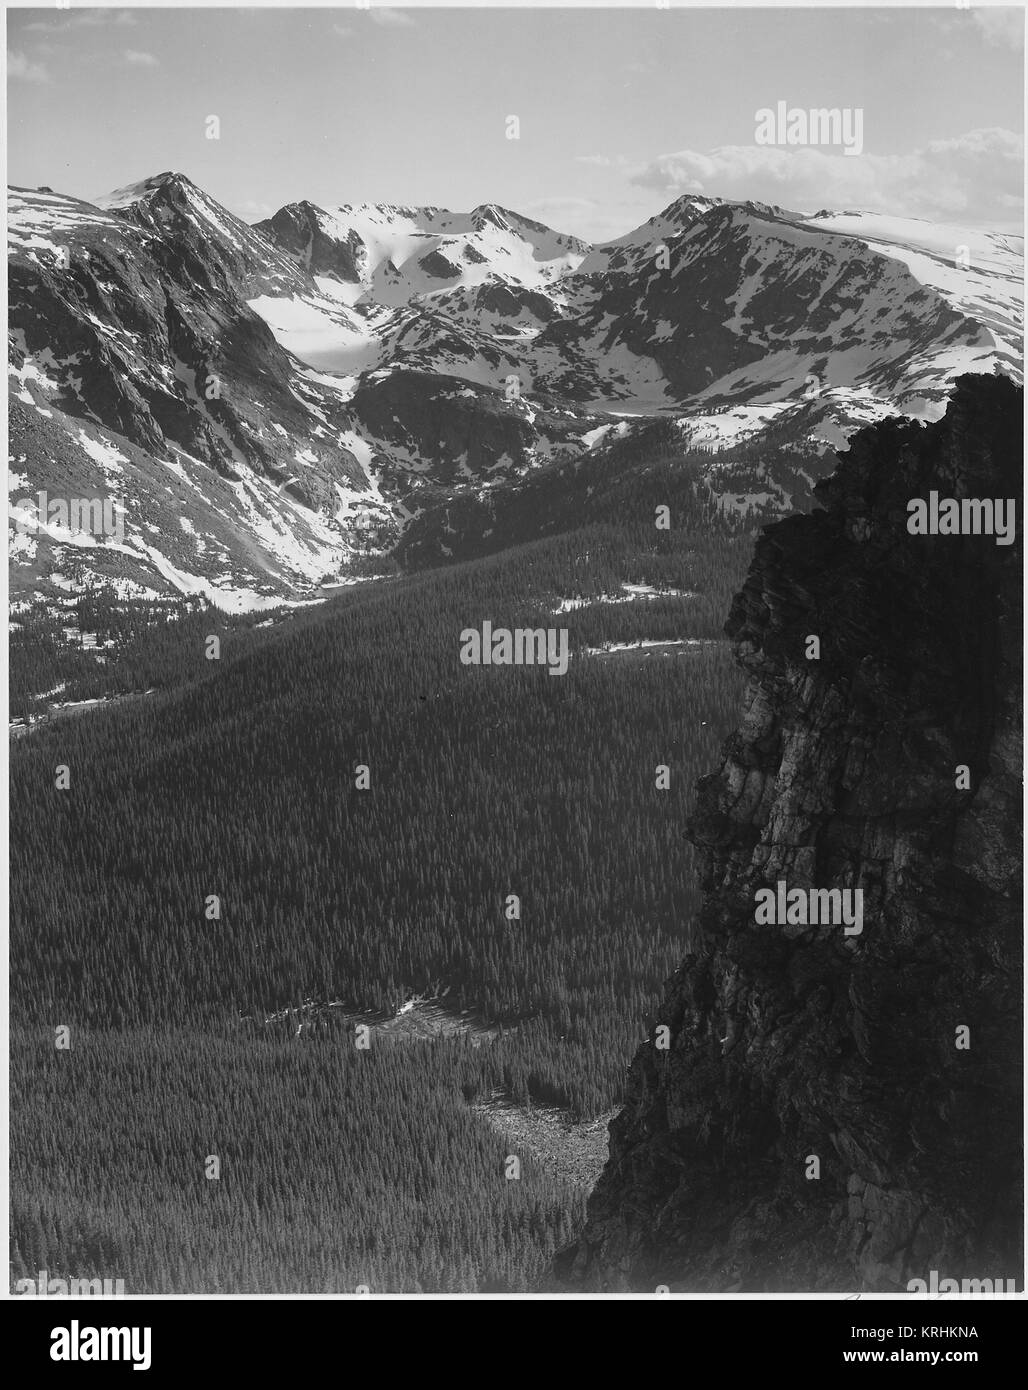 View of snow-capped mountain timbered area below 'In Rocky Mountain National Park' Colorado. (Vertical Orientation) - Stock Image